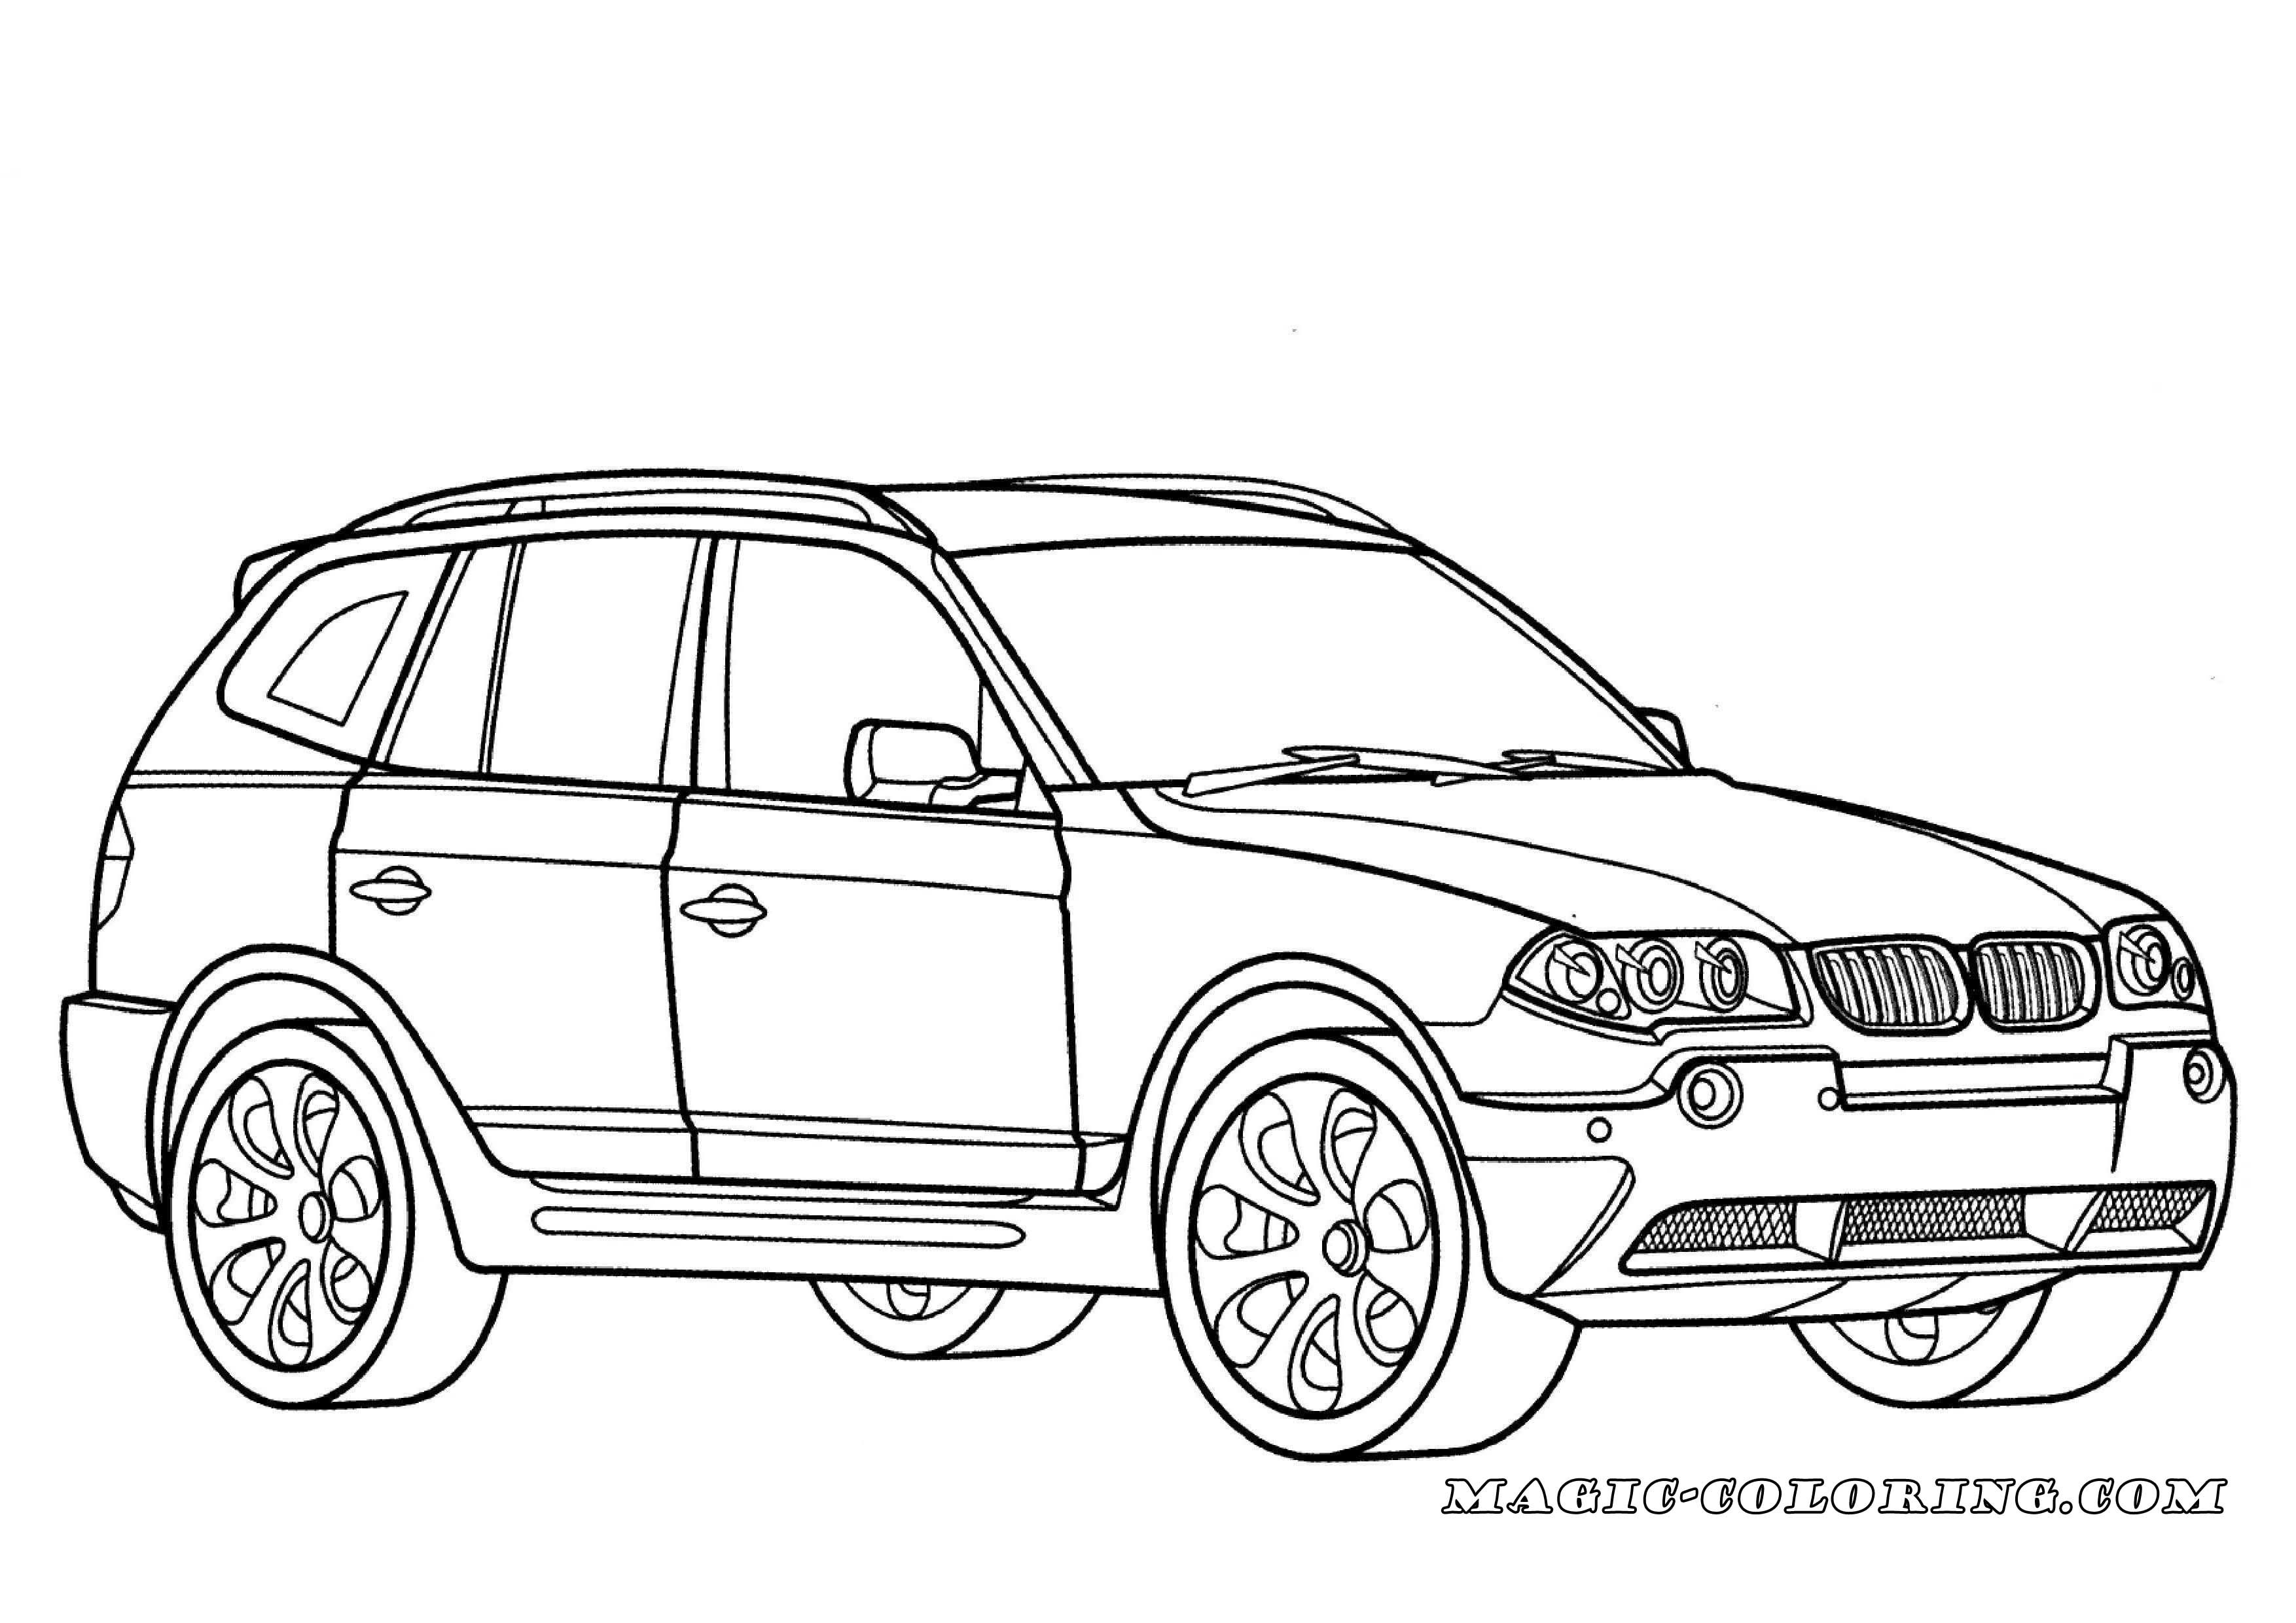 Bmw X3 Coloring Page Bmw X3 Cars Coloring Pages Bmw